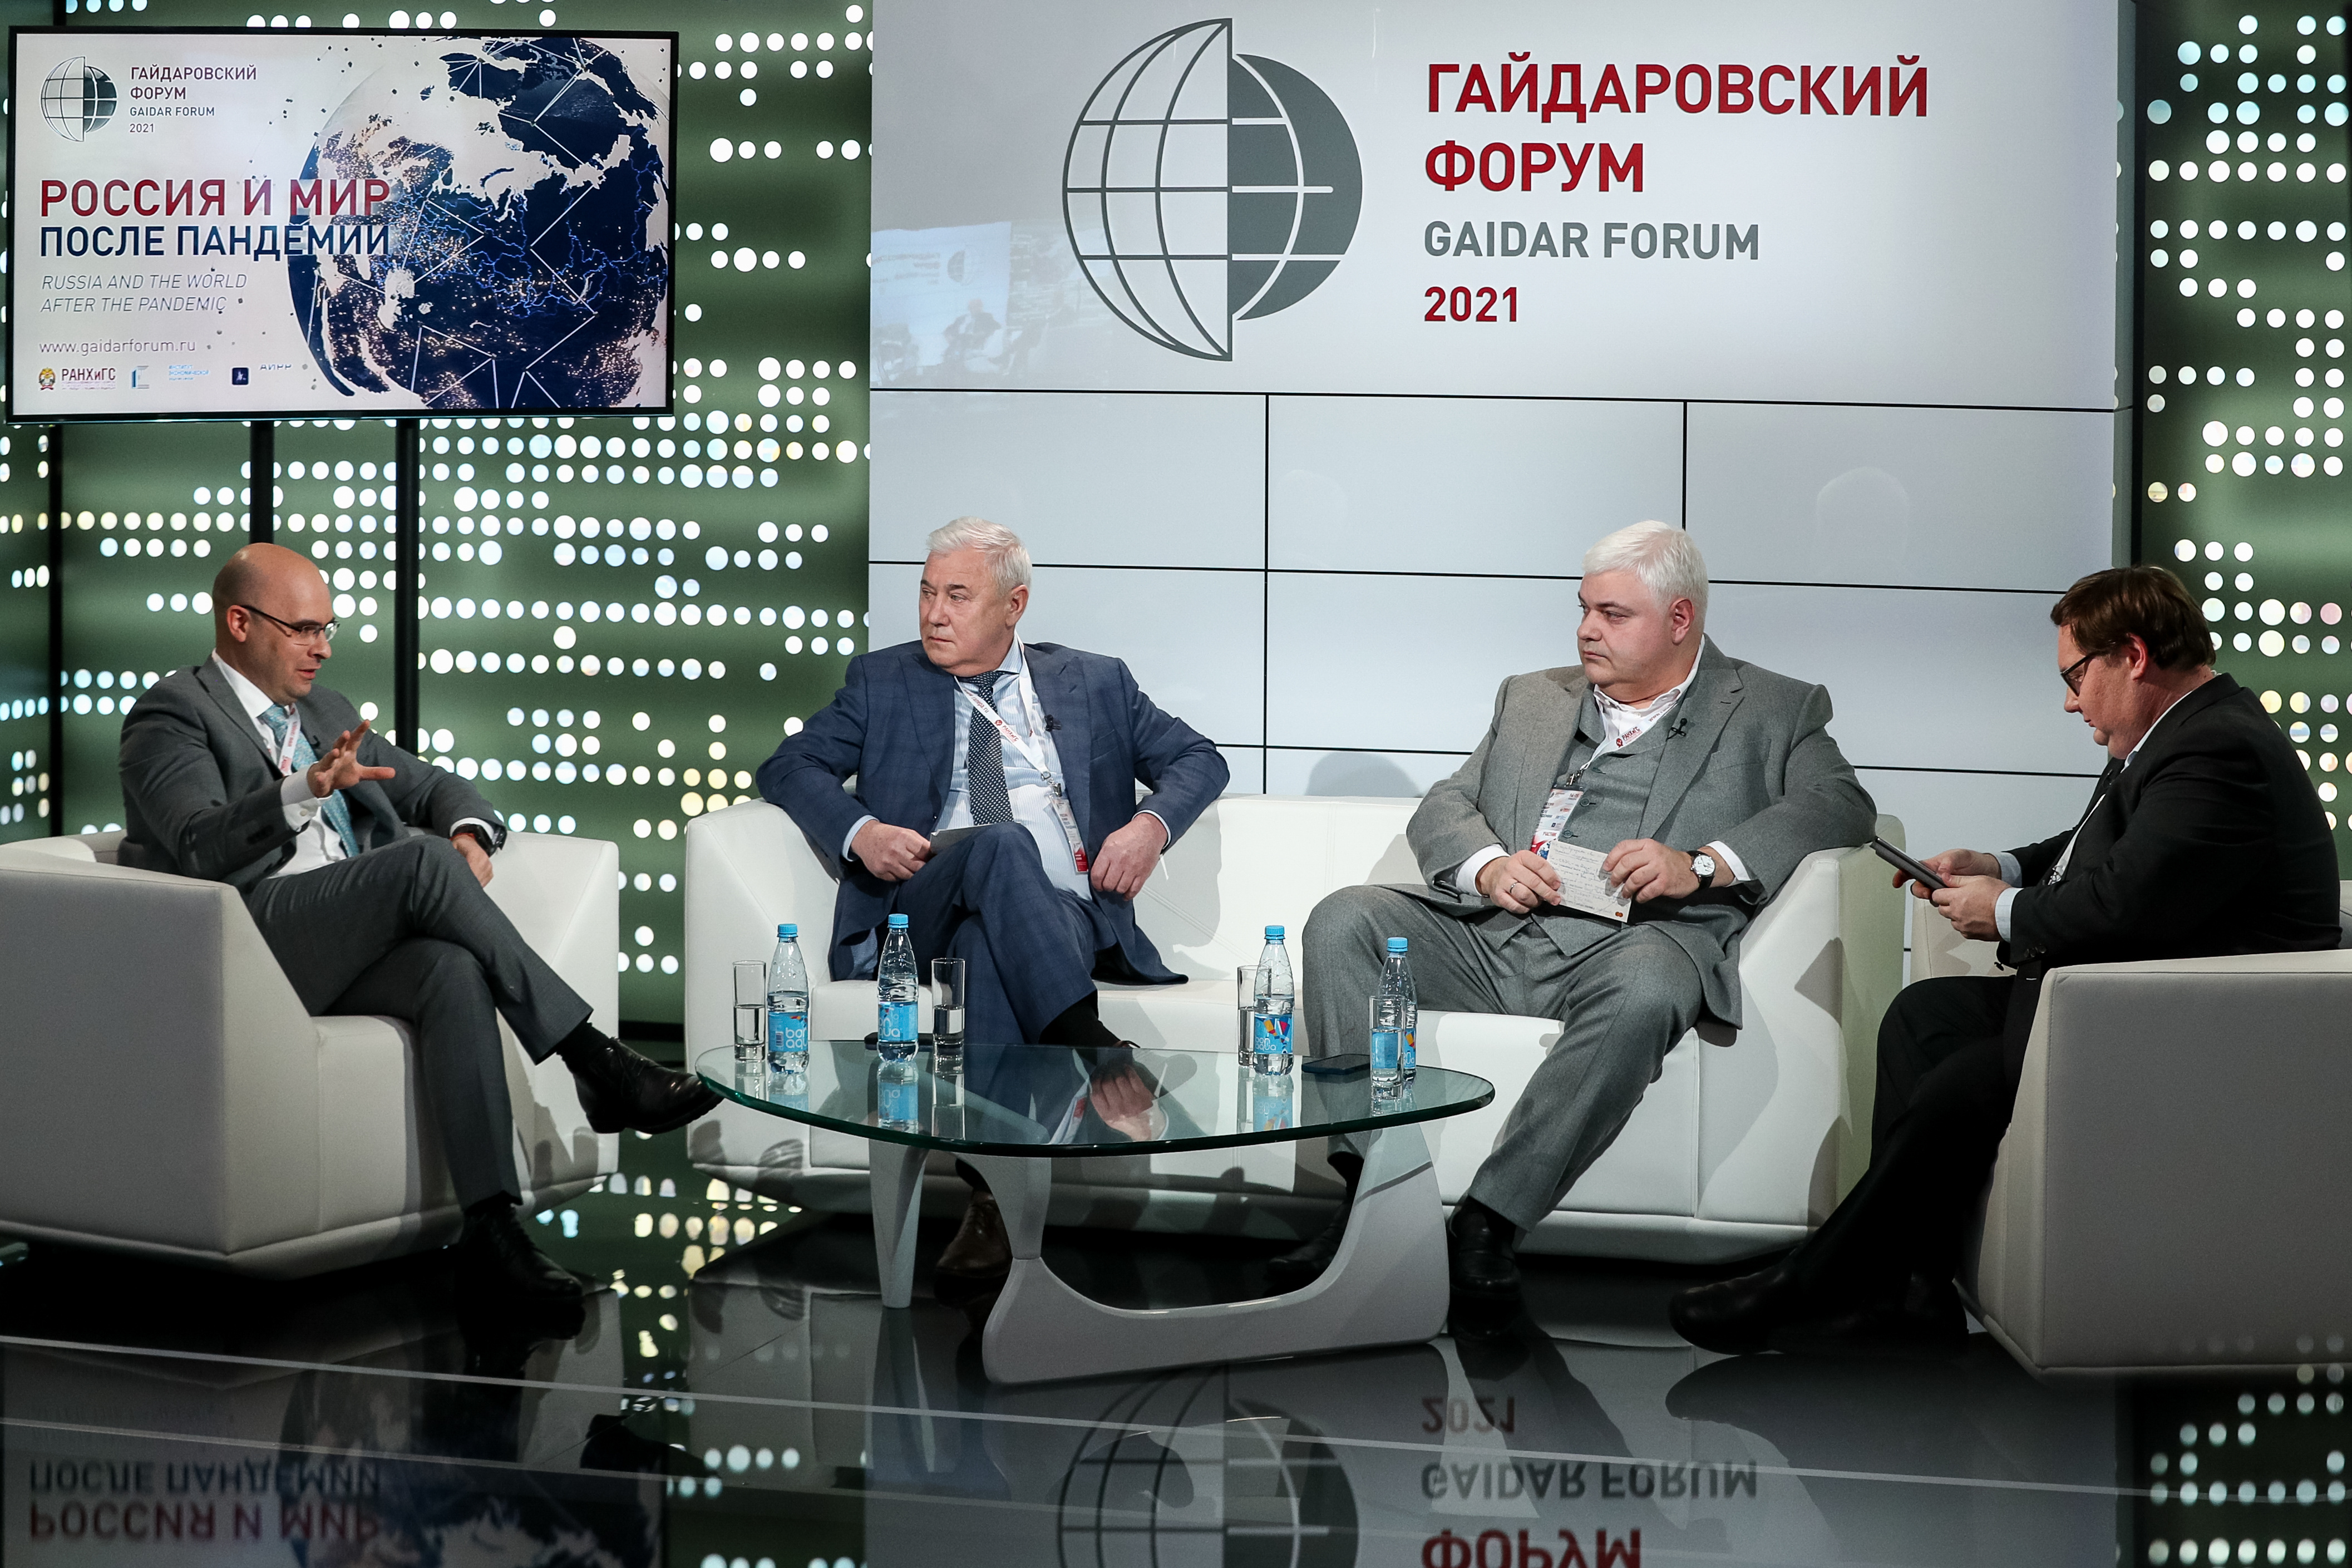 Gaidar Forum 2021 has Discussed the Need for Introducing a Digital Currency in Russia